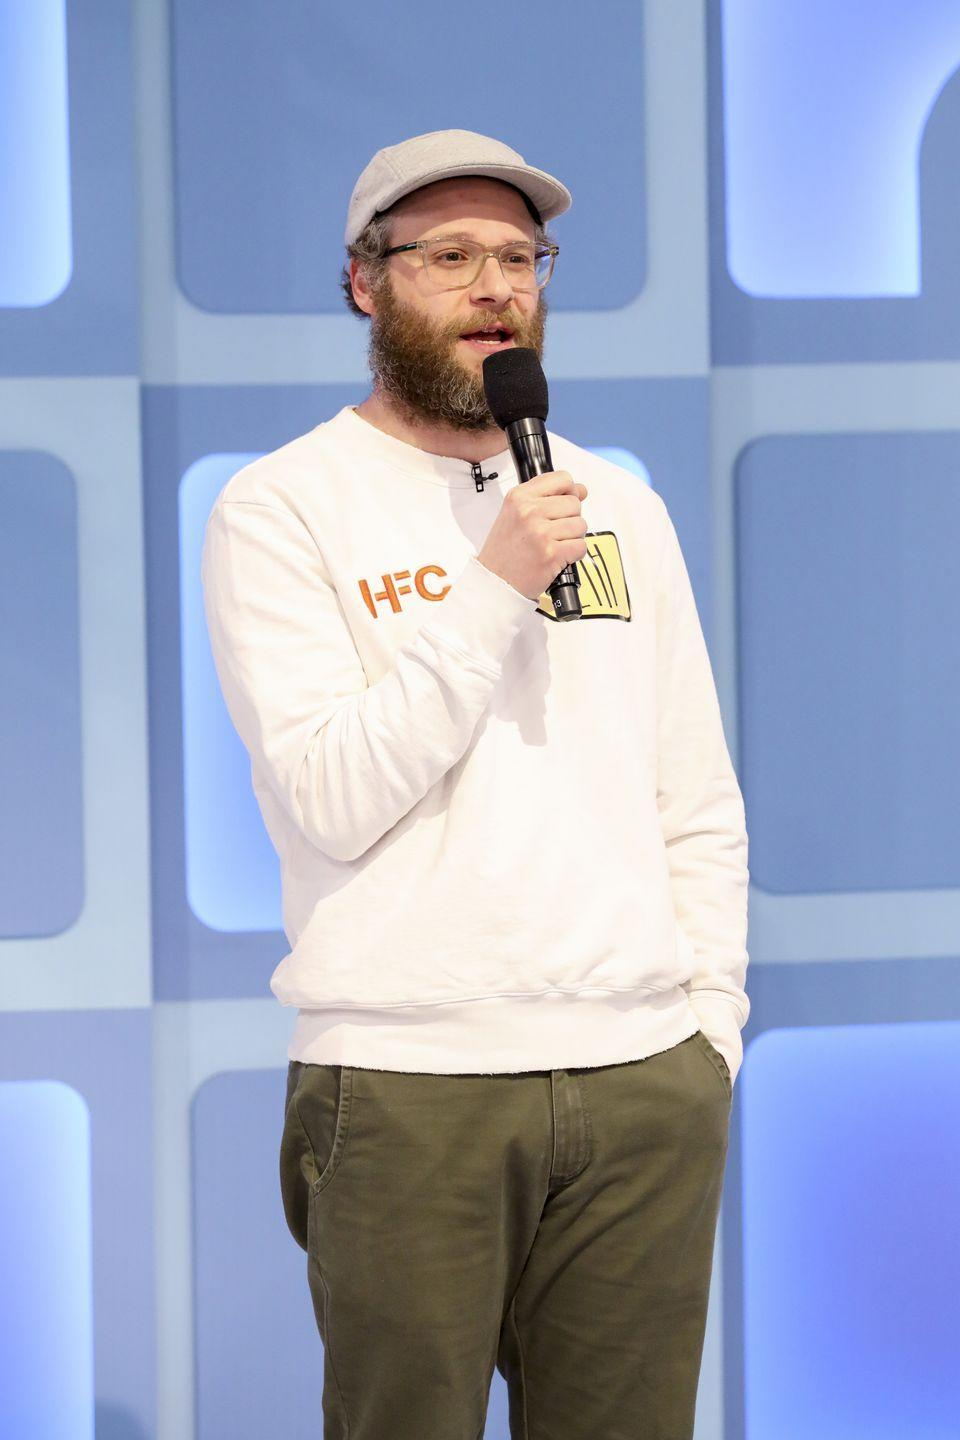 """<p><a href=""""https://www.menshealth.com/entertainment/a31736814/seth-rogen-stoned-live-tweeted-cats/"""" rel=""""nofollow noopener"""" target=""""_blank"""" data-ylk=""""slk:Rogen"""" class=""""link rapid-noclick-resp"""">Rogen</a>'s typical appearance usually has some sort of facial hair and a cool pair of frames. And does he look good in them? Why yes, he does. </p>"""